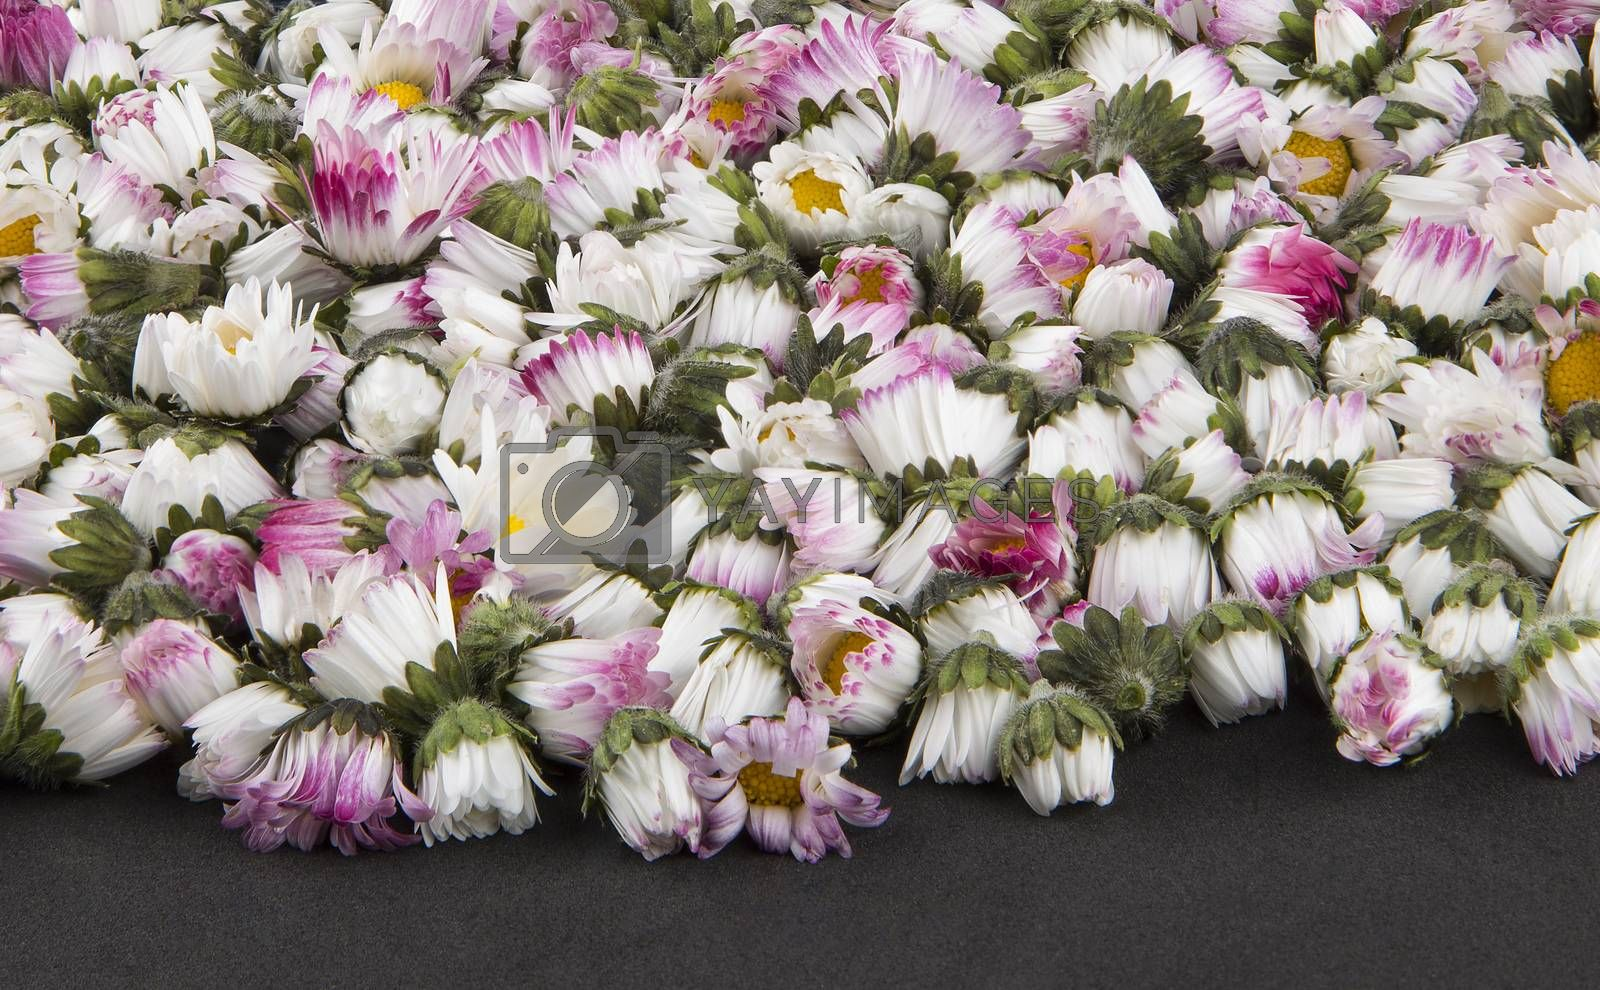 Background: sleeping closed daisies - bellis perennis by paocasa